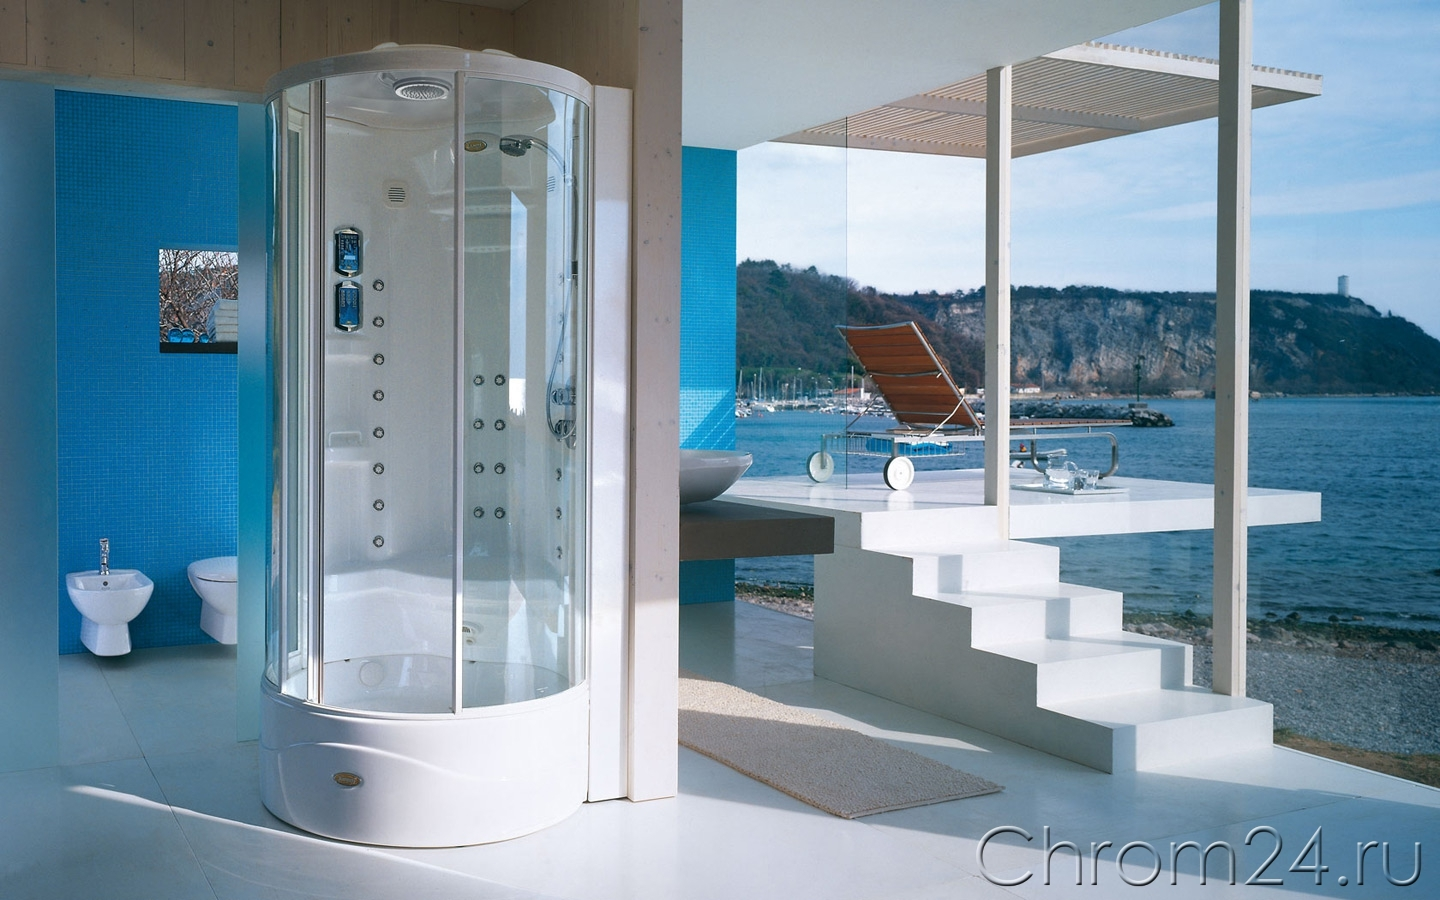 Flexa Tower (Jacuzzi)